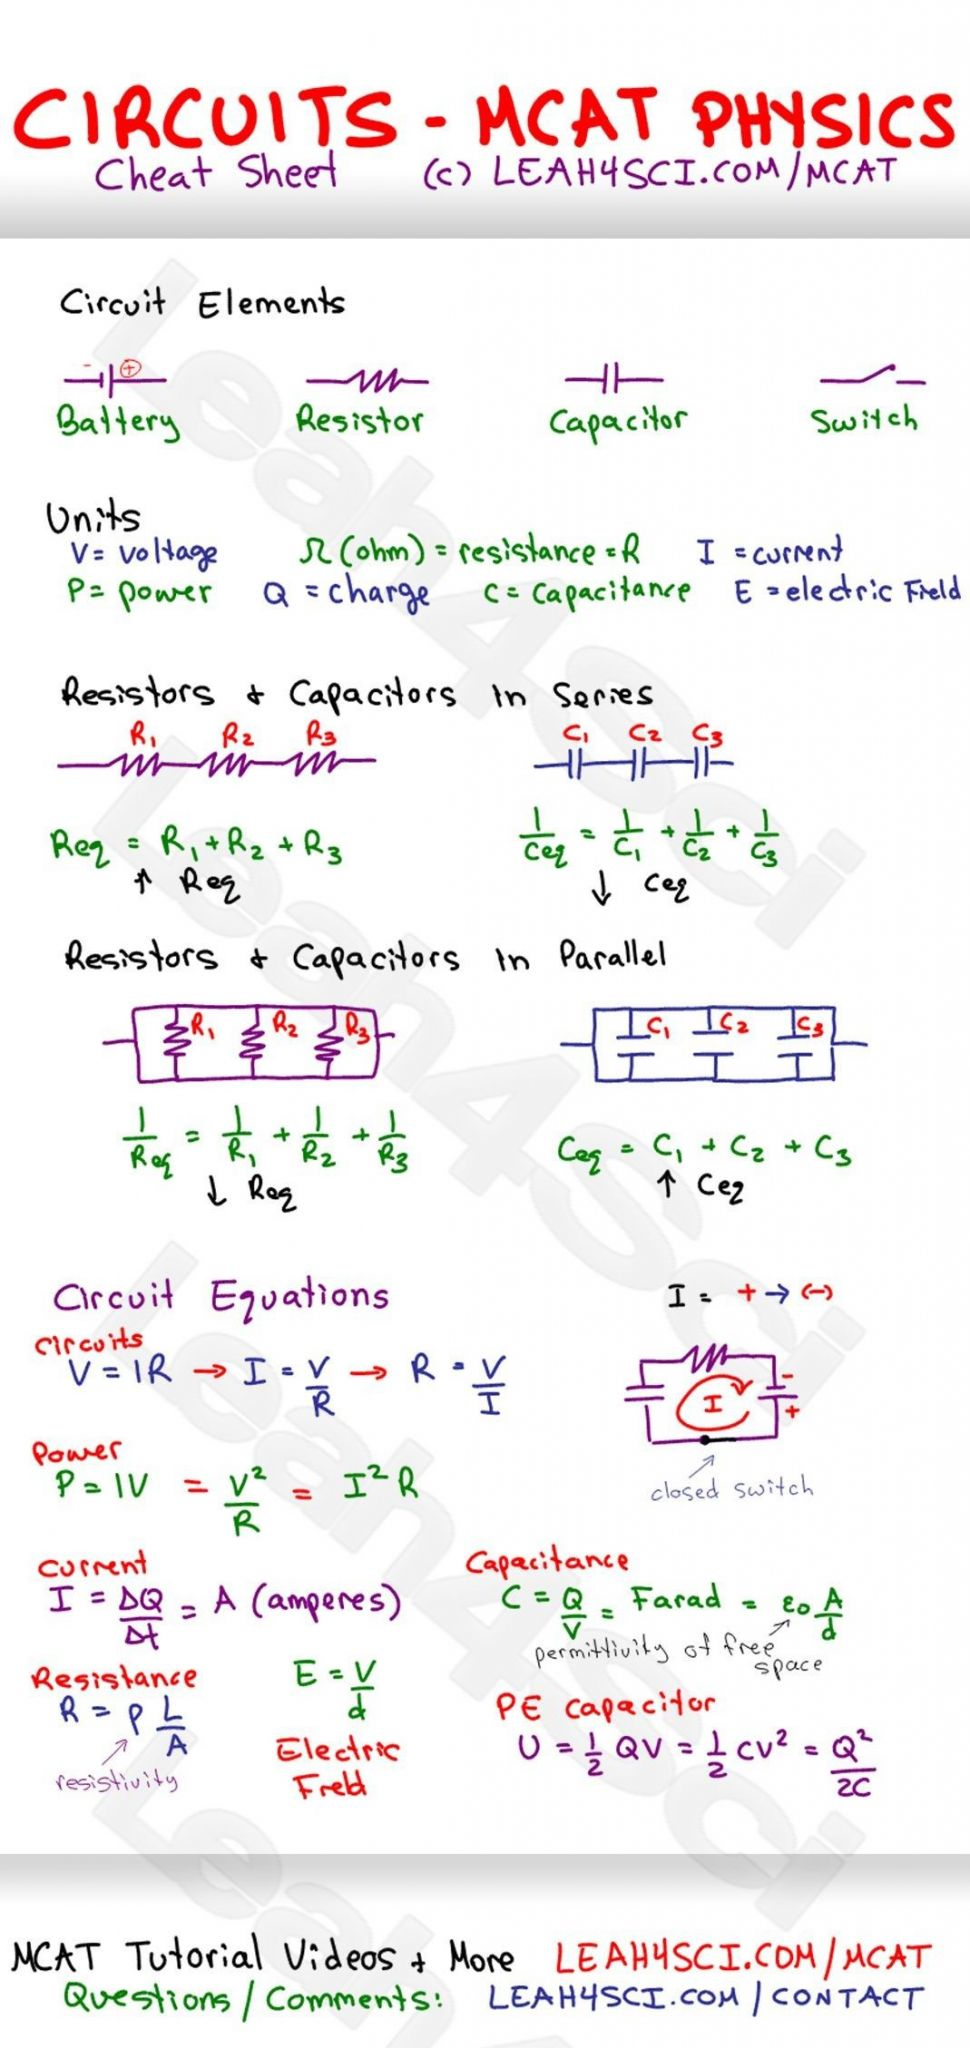 medium resolution of Electric Circuits And Electric Current Worksheet Answers - Nidecmege